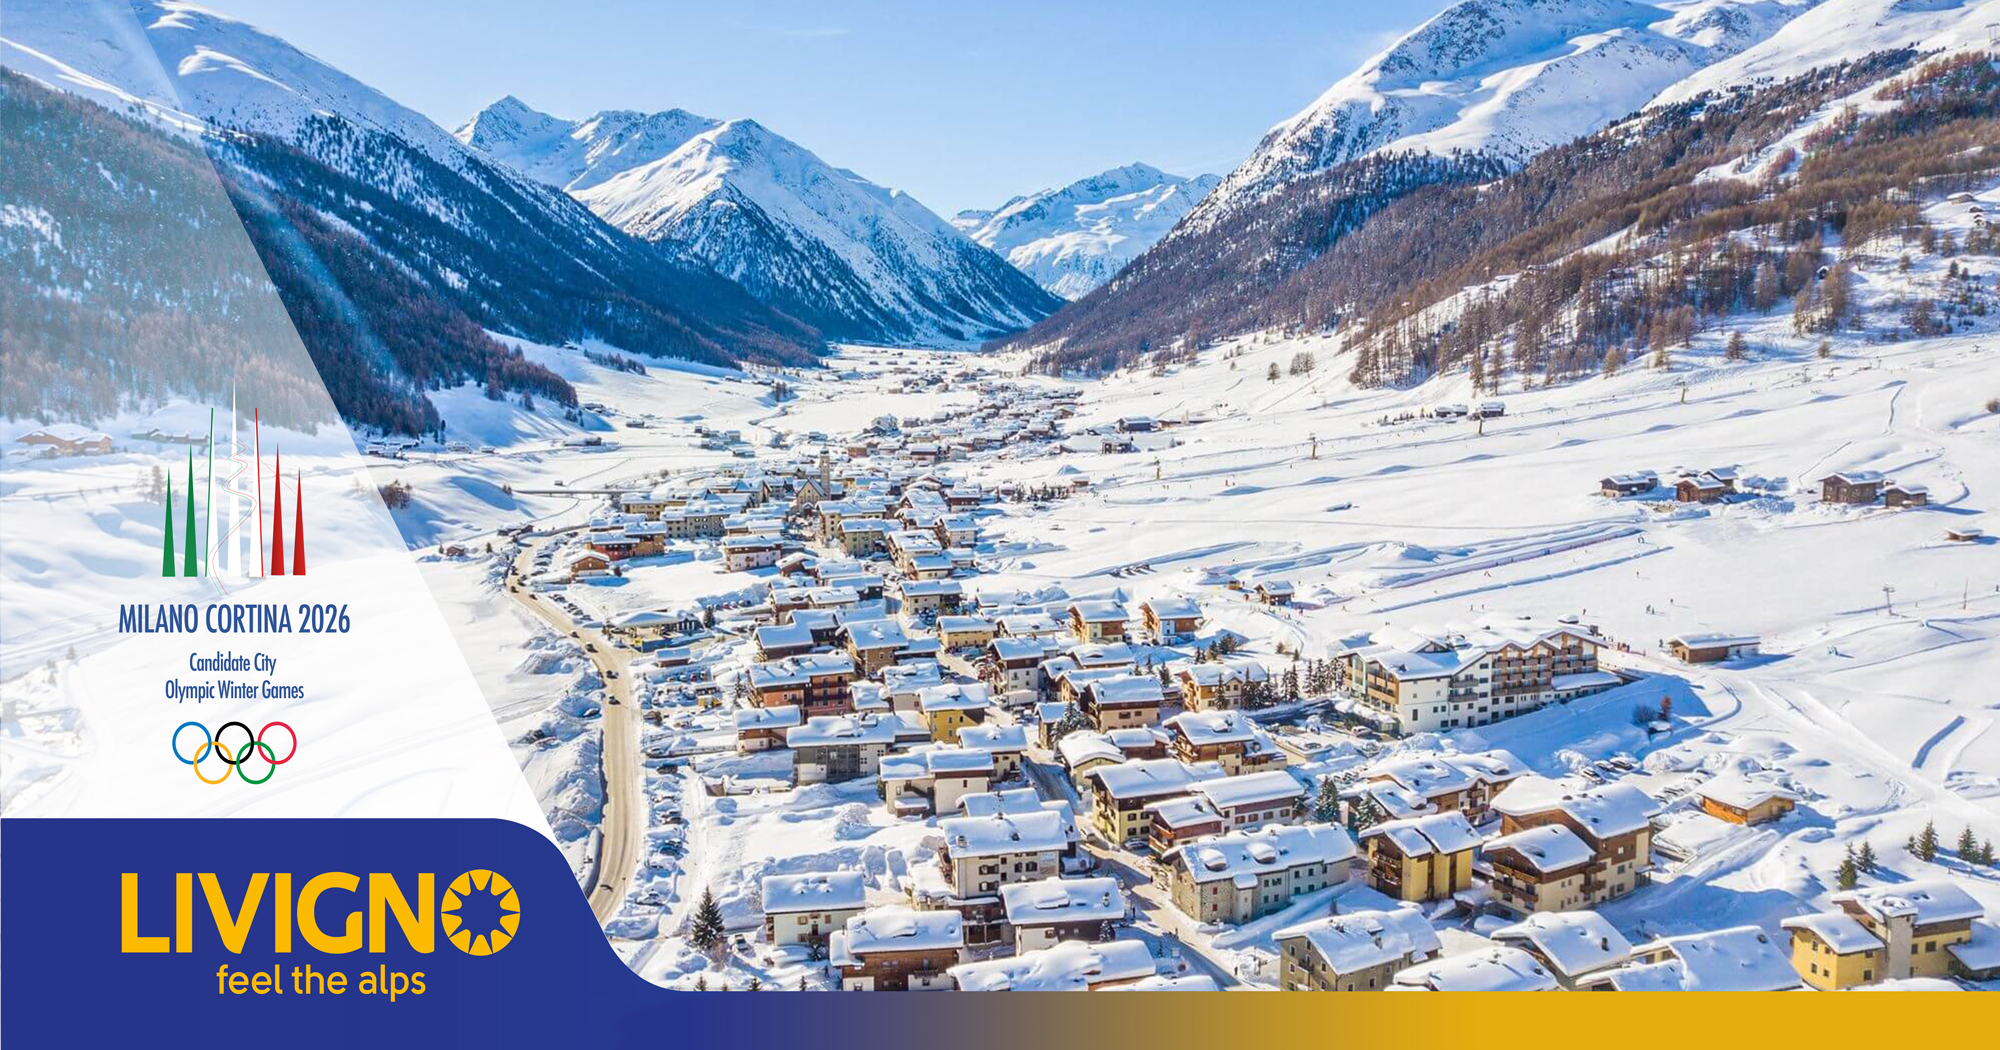 Promotional image of the village of Livigno with branding for the 2026 olympics